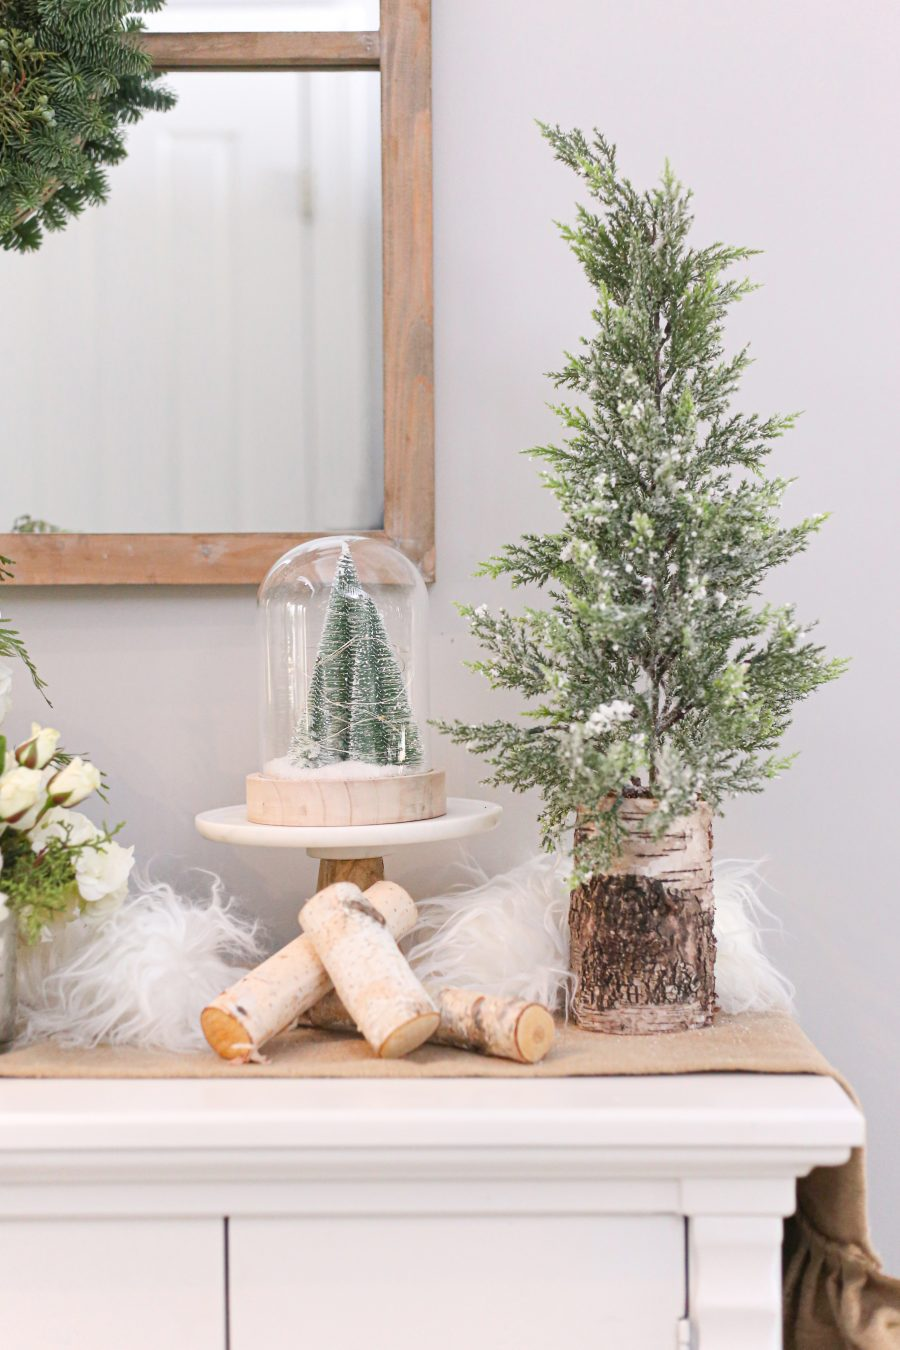 Black Friday and Cyber Monday Sales from Wayfair tabletop pine tree and snowglobe with bottlebrush pine trees